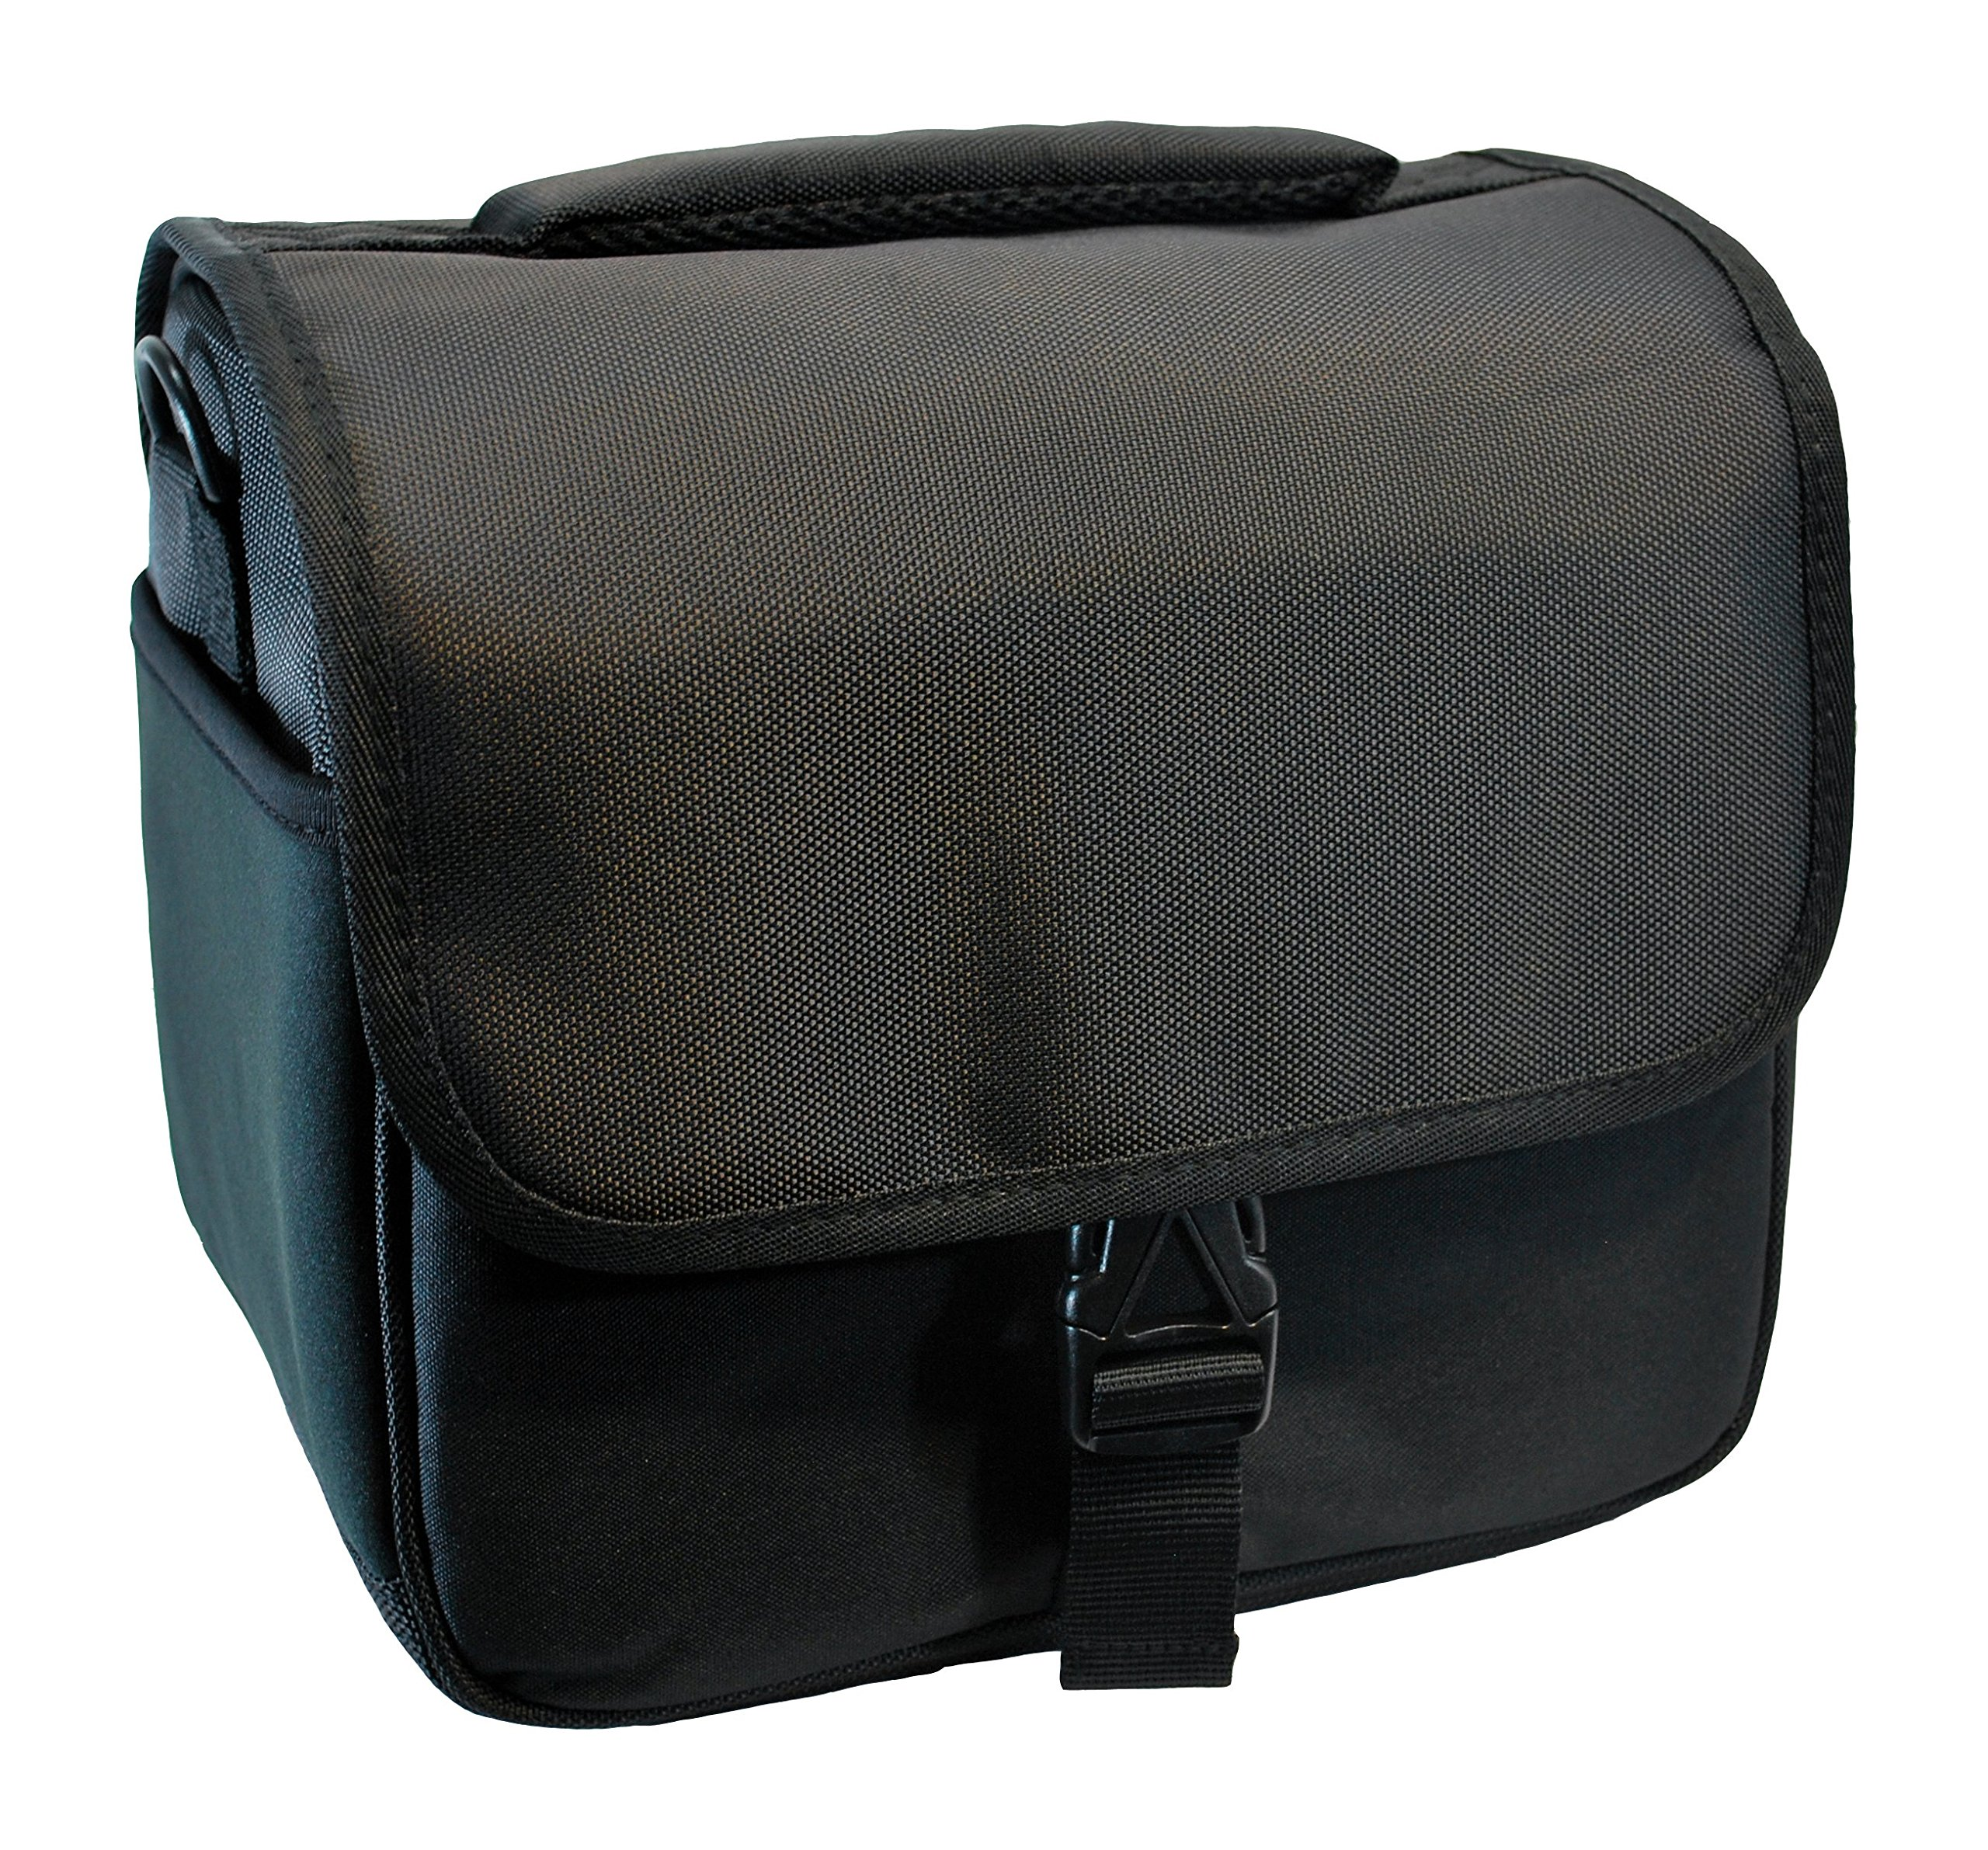 Designer Black DSLR Camera Bag